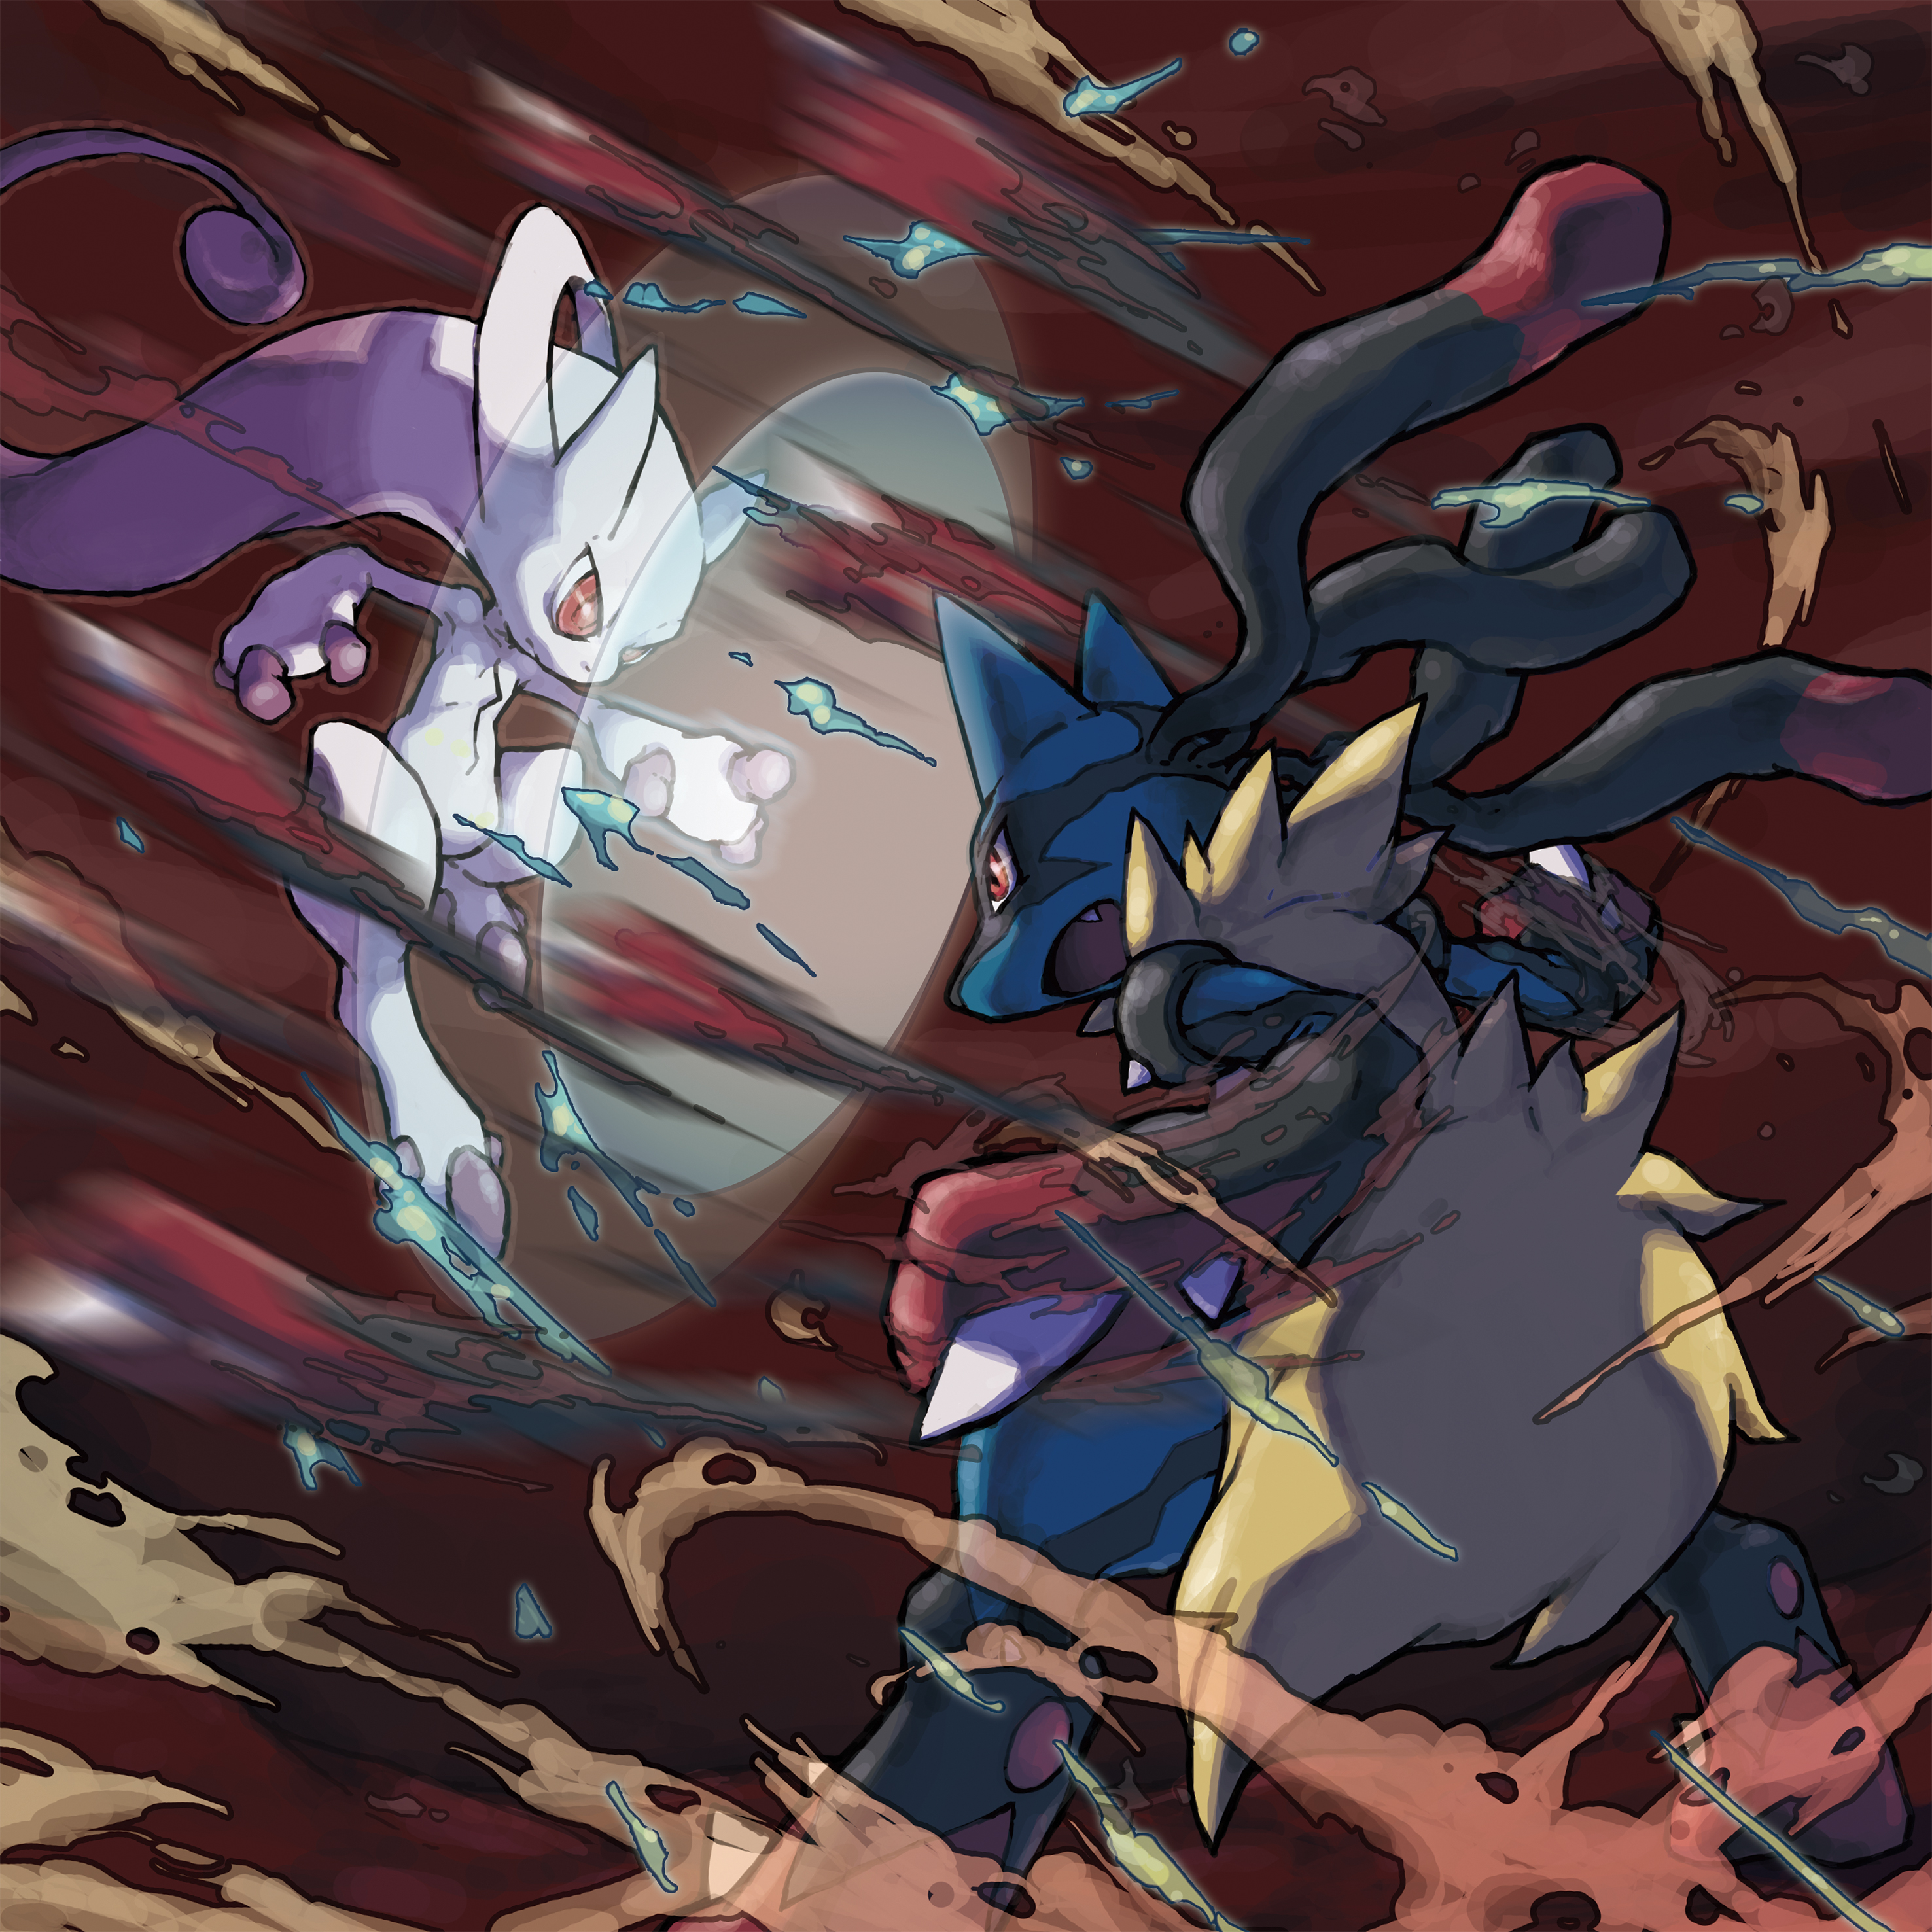 http://www.pokebip.com/pokemon/pages/jeuxvideo/pokemon_version_x_pokemon_version_y_pokemon_x_y/images/artworks/artwork_mega_battle.png